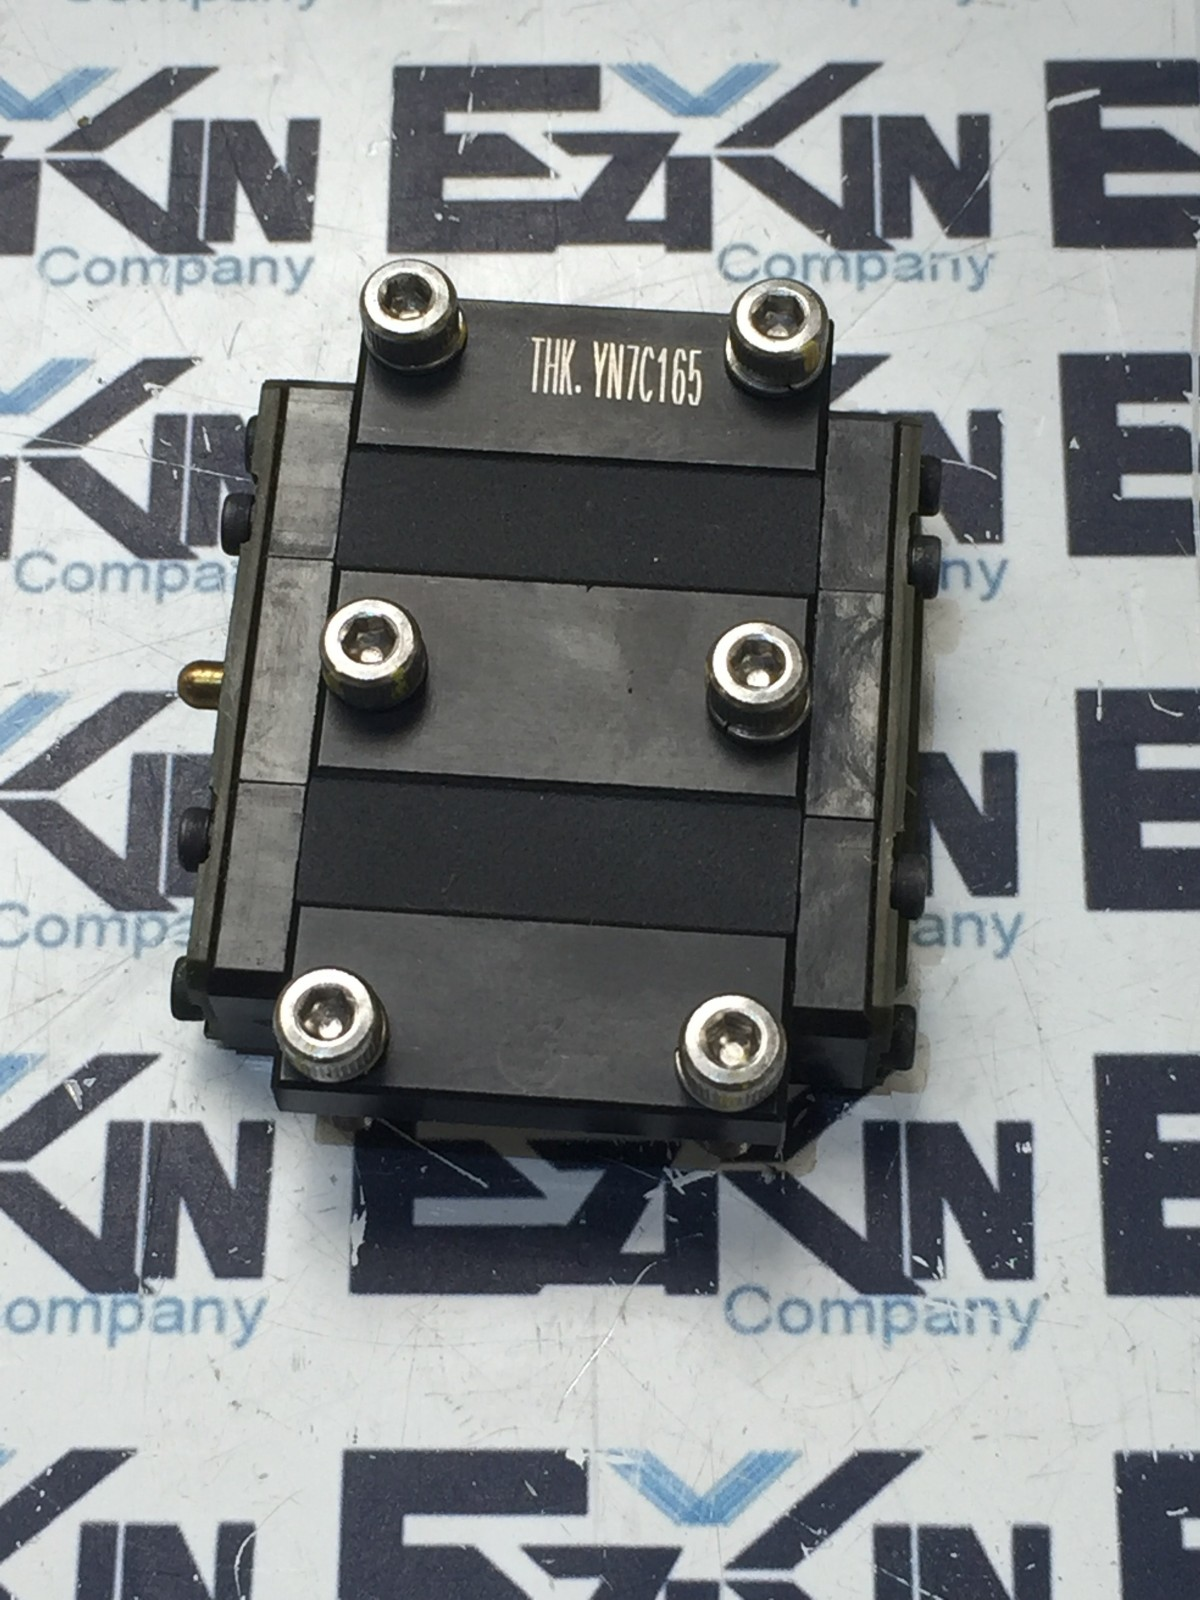 THK YN7C165 LINEAR GUIDE CARRIAGE